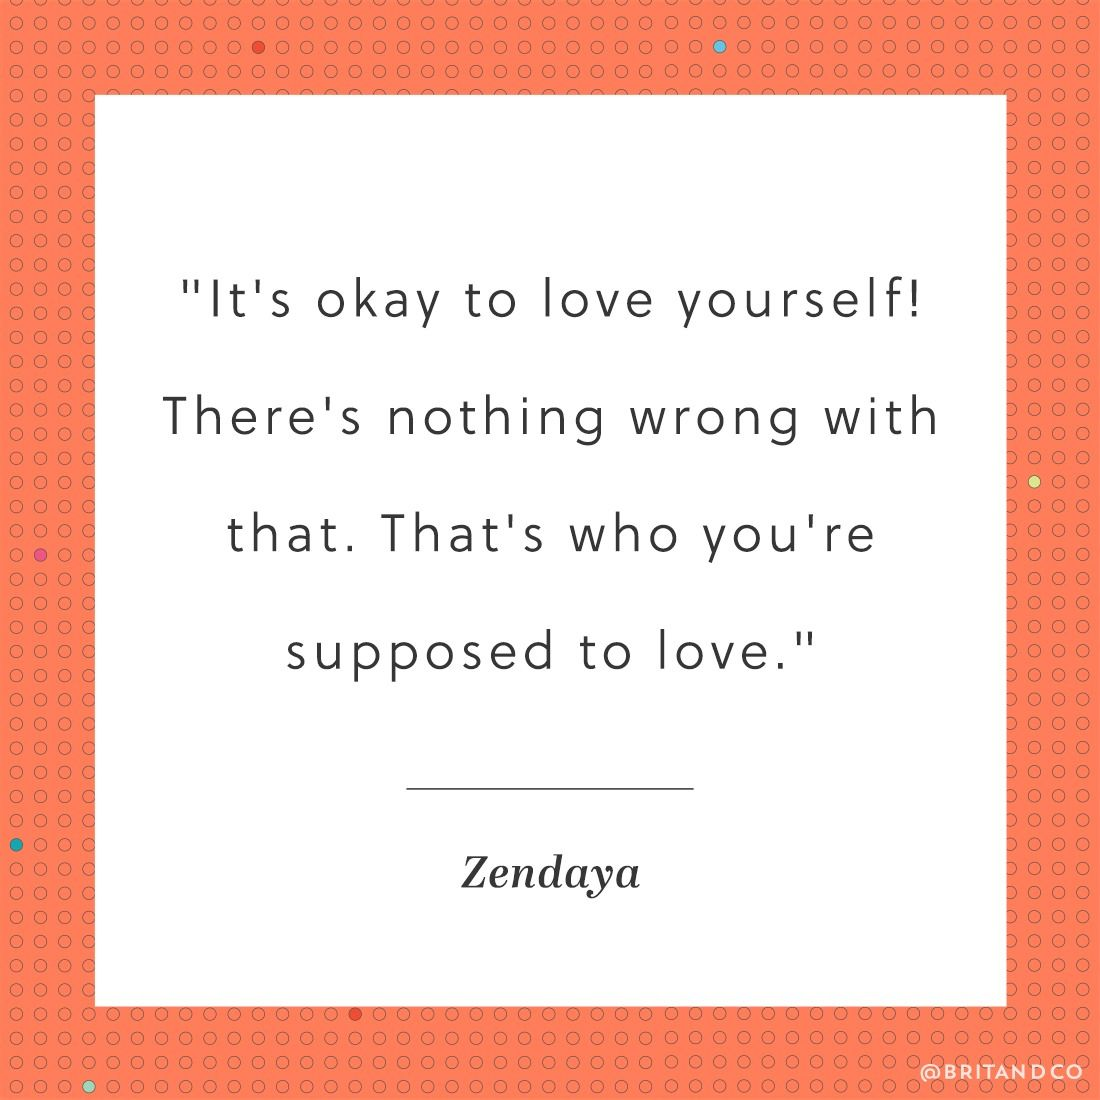 Listen to Zendaya, it's more than okay to love yourself.